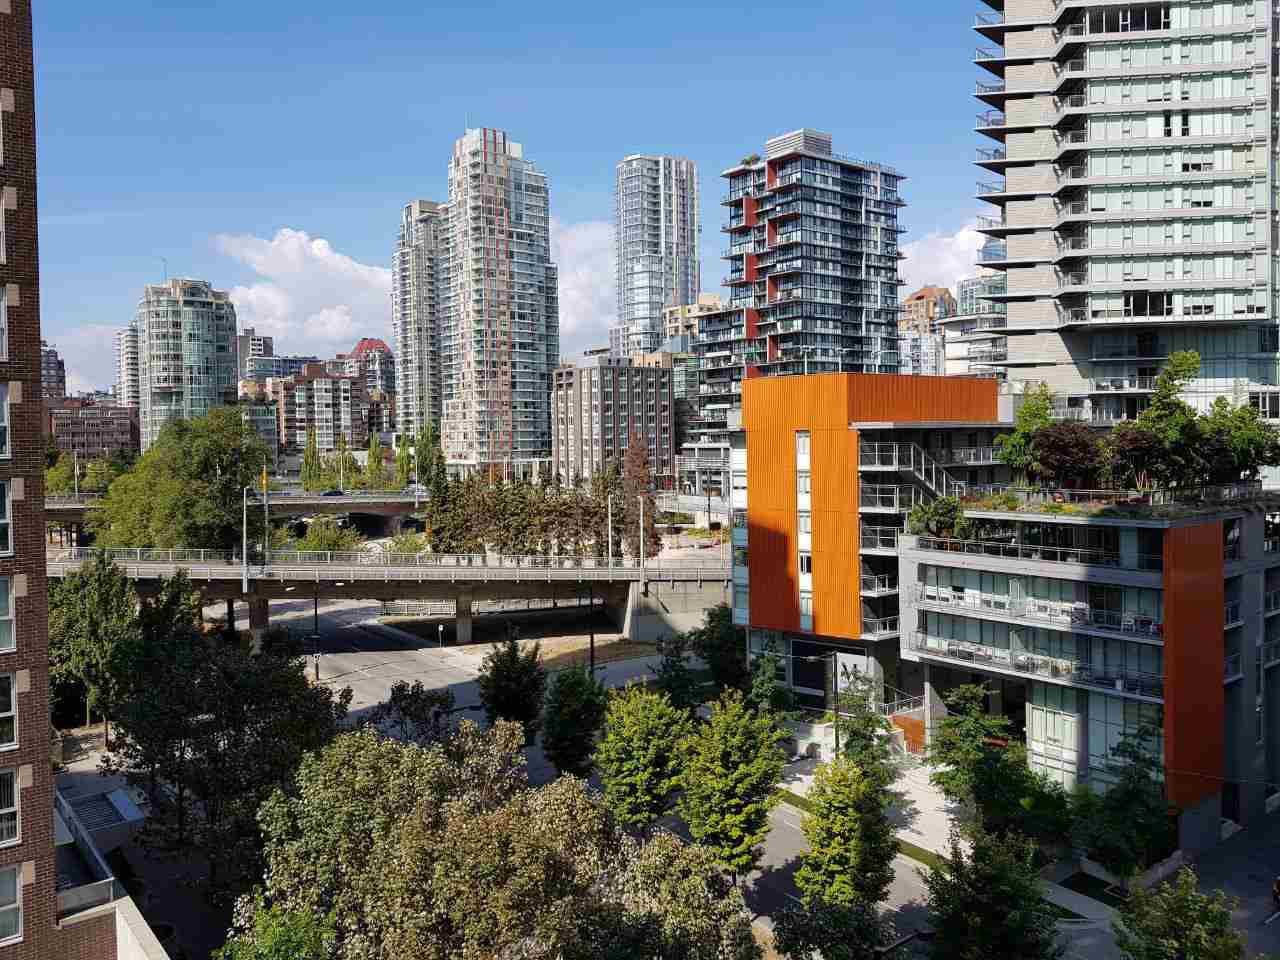 """Main Photo: 1007 1495 RICHARDS Street in Vancouver: Yaletown Condo for sale in """"AZURA II"""" (Vancouver West)  : MLS®# R2312999"""